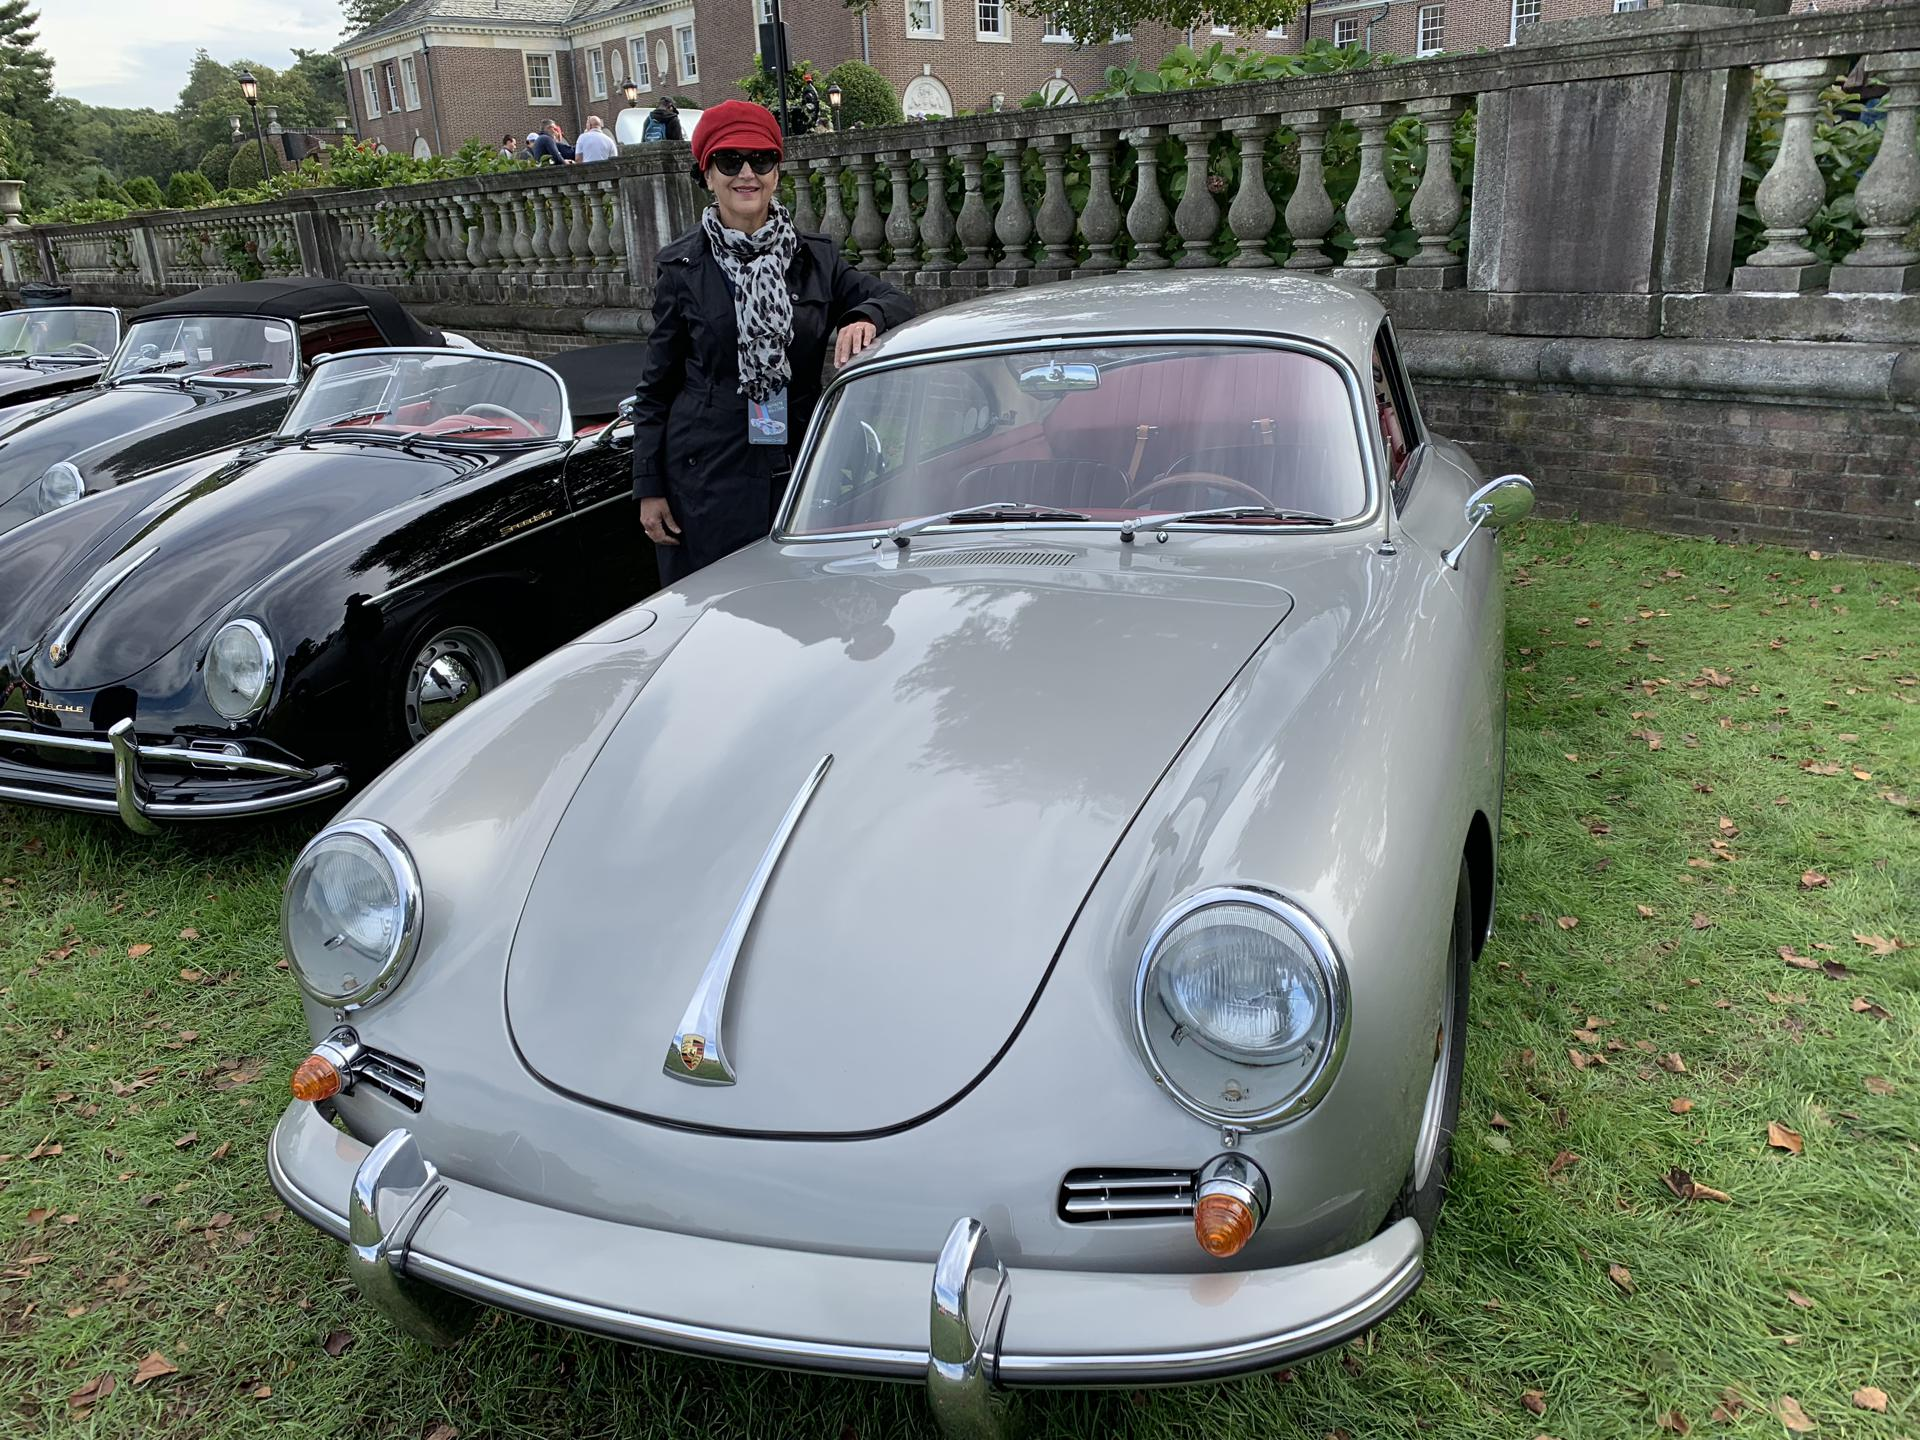 Road Warrior: Pamela Brundage with her 1962 Porsche 356B S90 Coupe after driving it from Chicago to New York for an auto show.